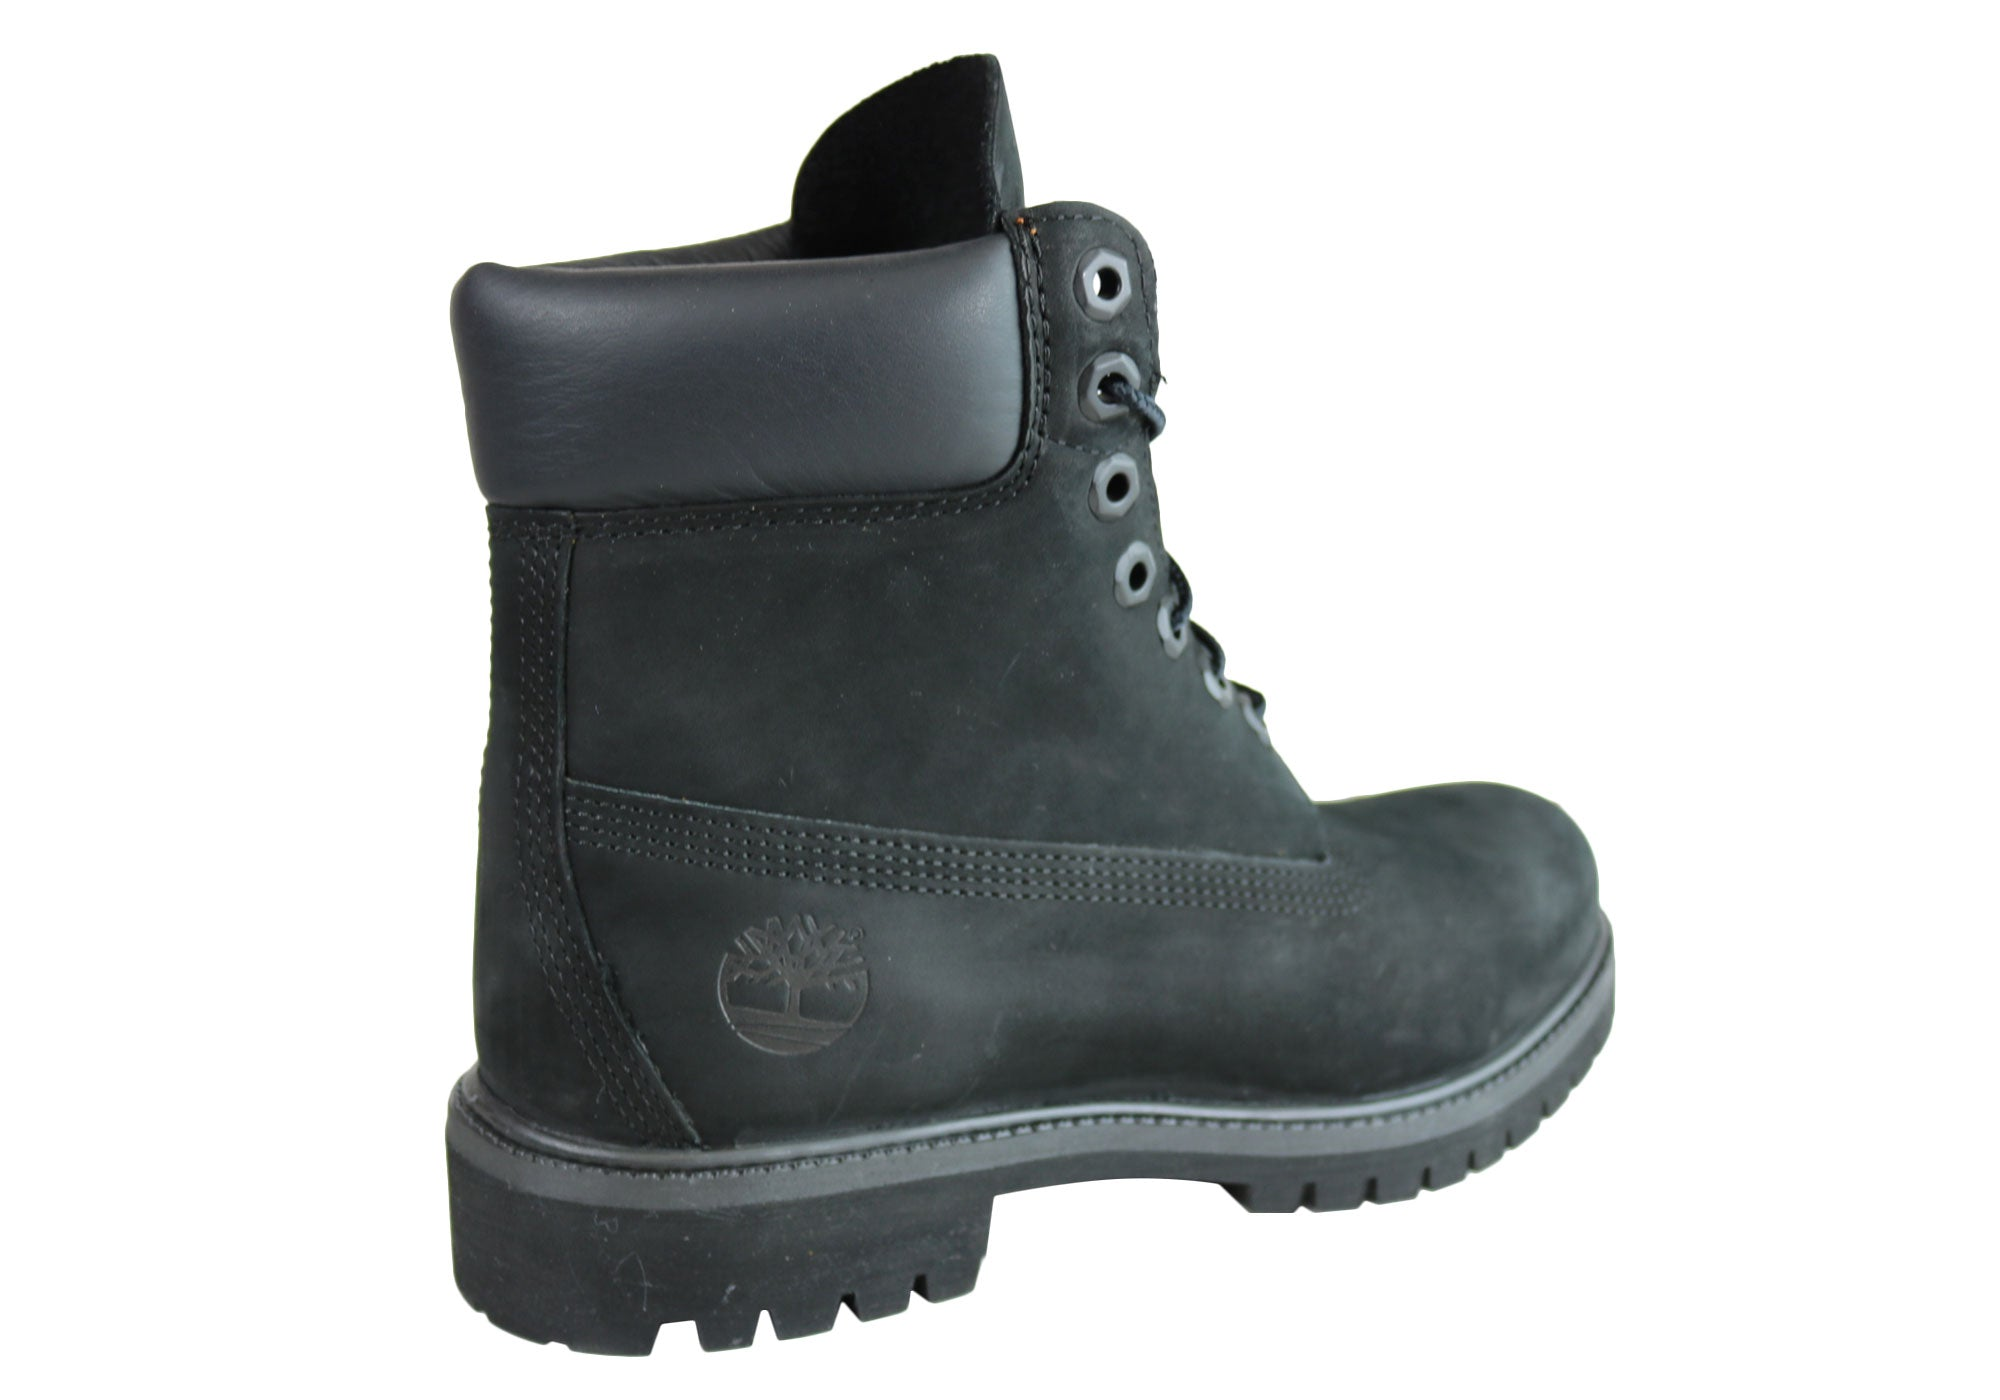 NEW-TIMBERLAND-MENS-COMFORTABLE-LACE-UP-6-INCH-PREMIUM-WATERPROOF-BOOTS thumbnail 4